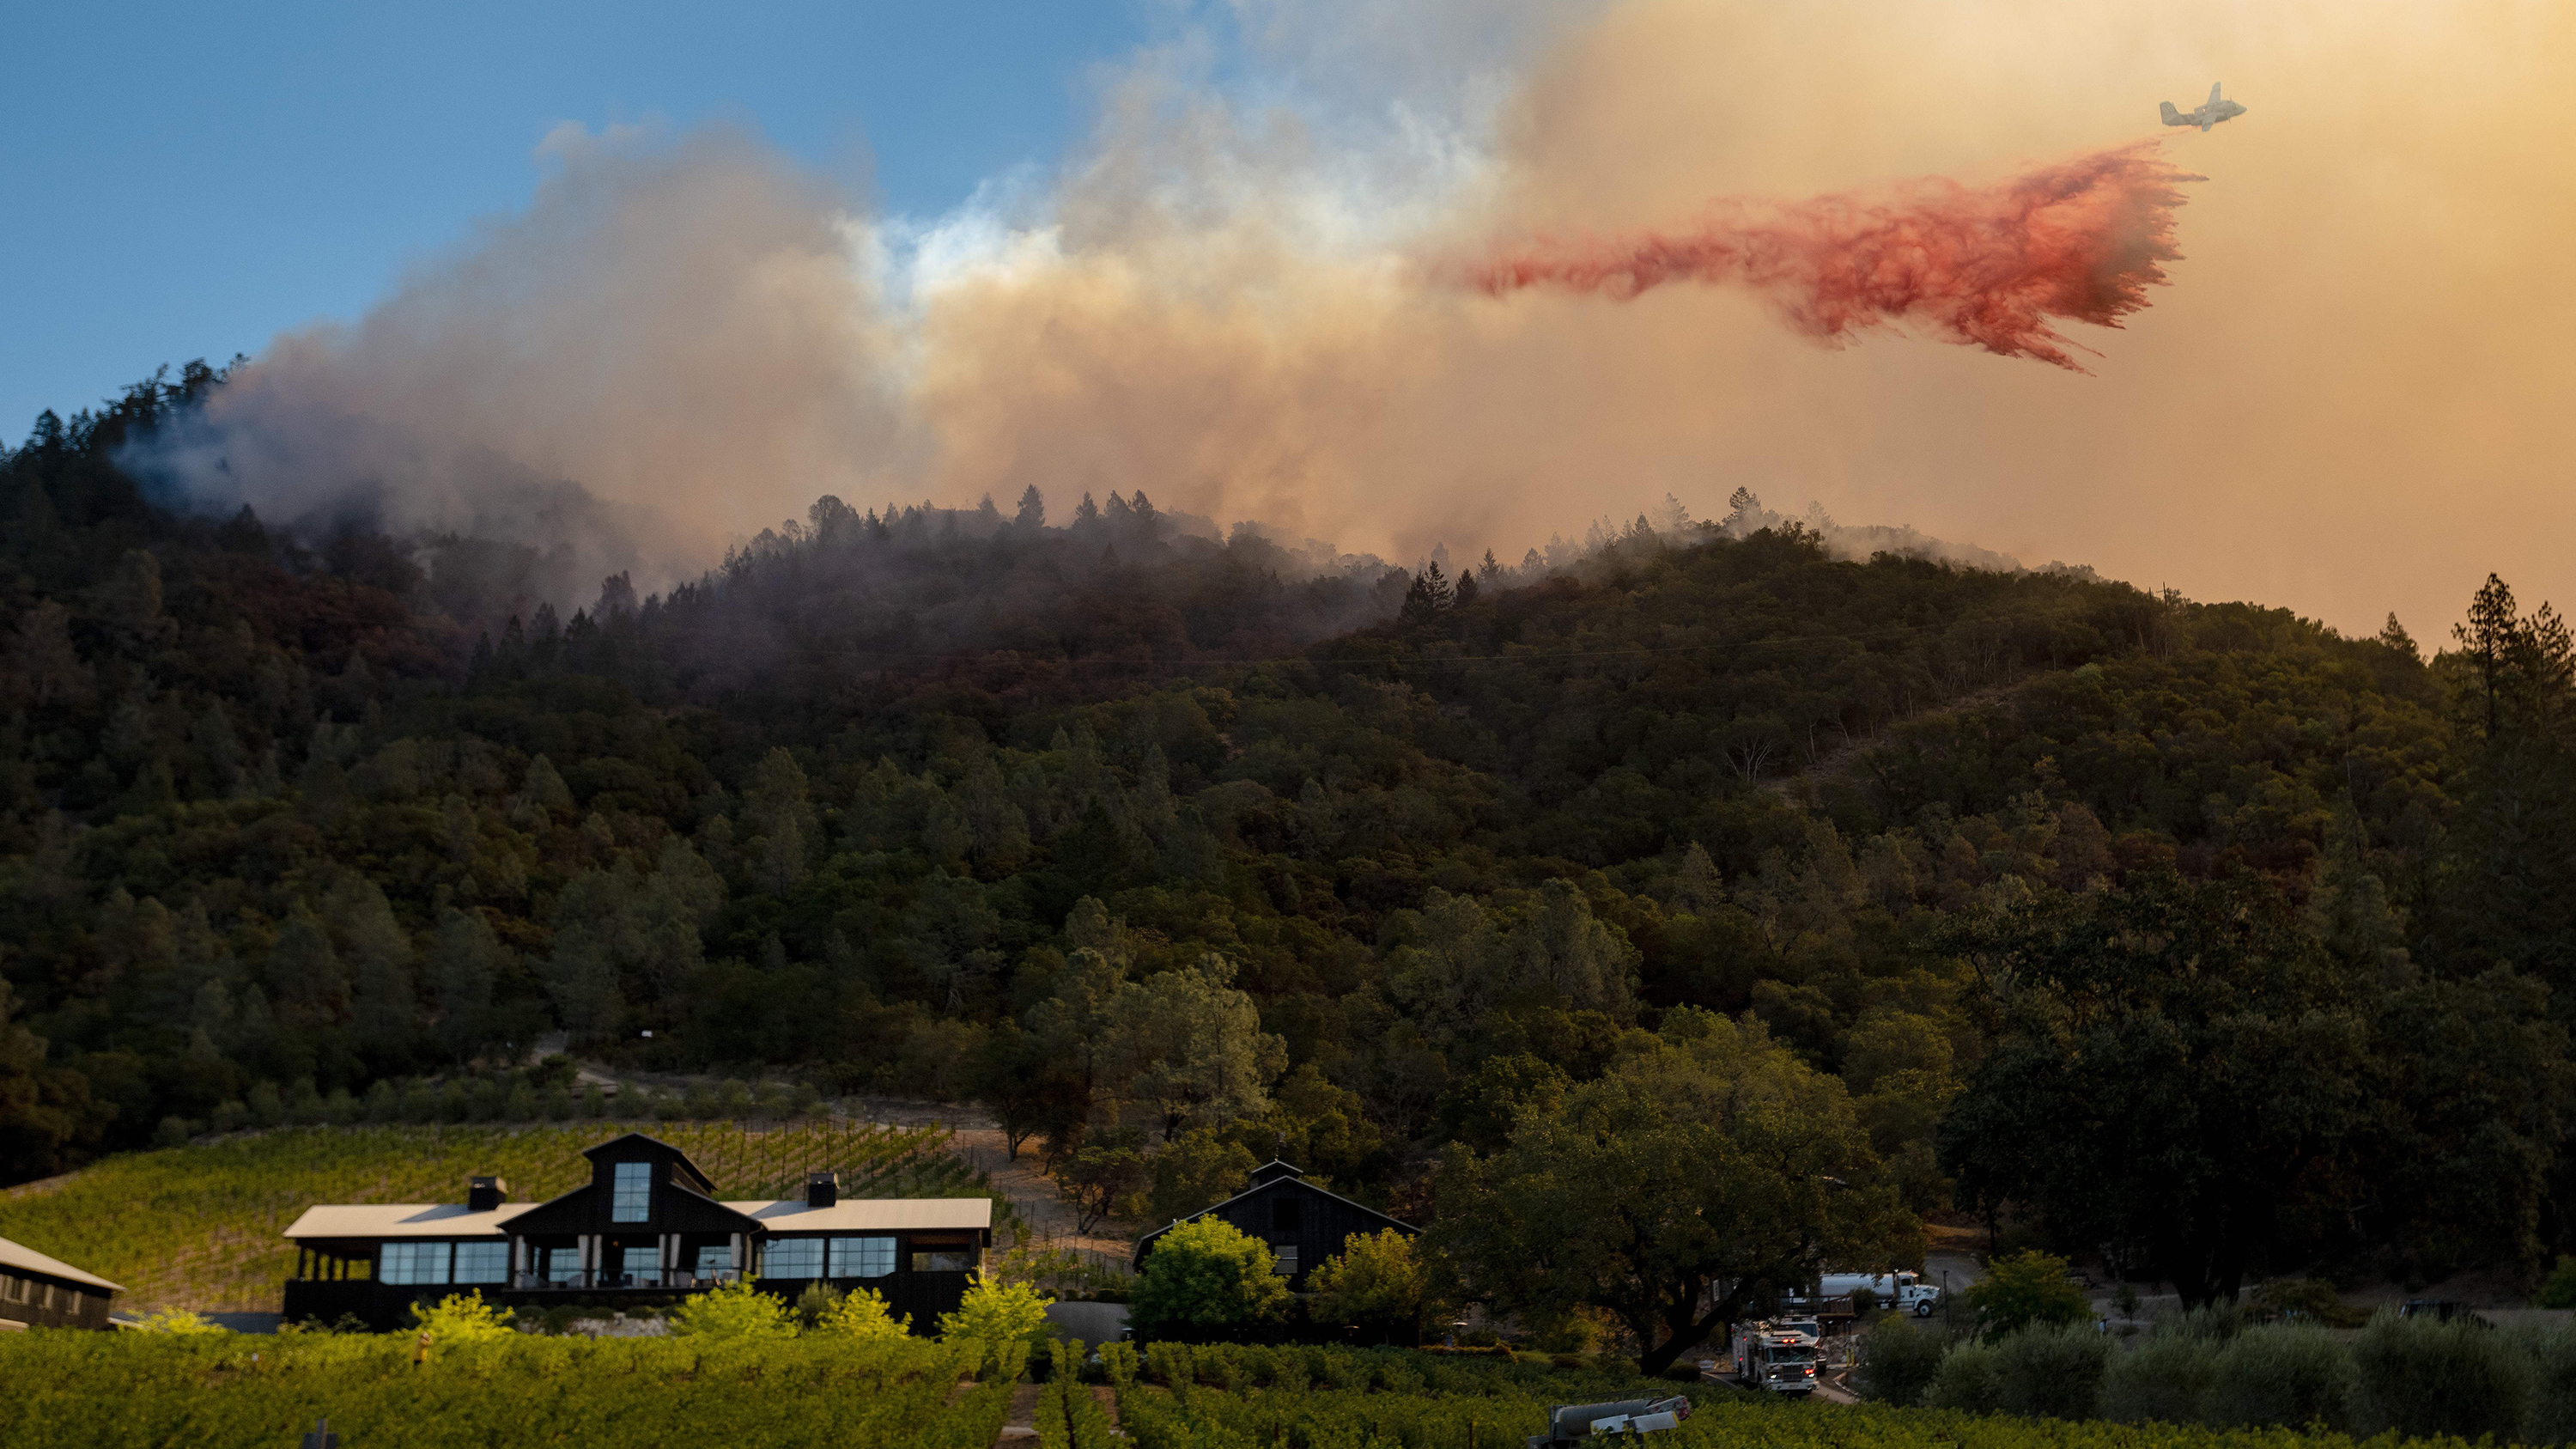 A California Department of Forestry and Fire Protection airplane drops fire retardant along a burning hill during the Glass Fire in Calistoga, Calif., in September. California is one of two states to require wildfire risk be disclosed to new homebuyers.